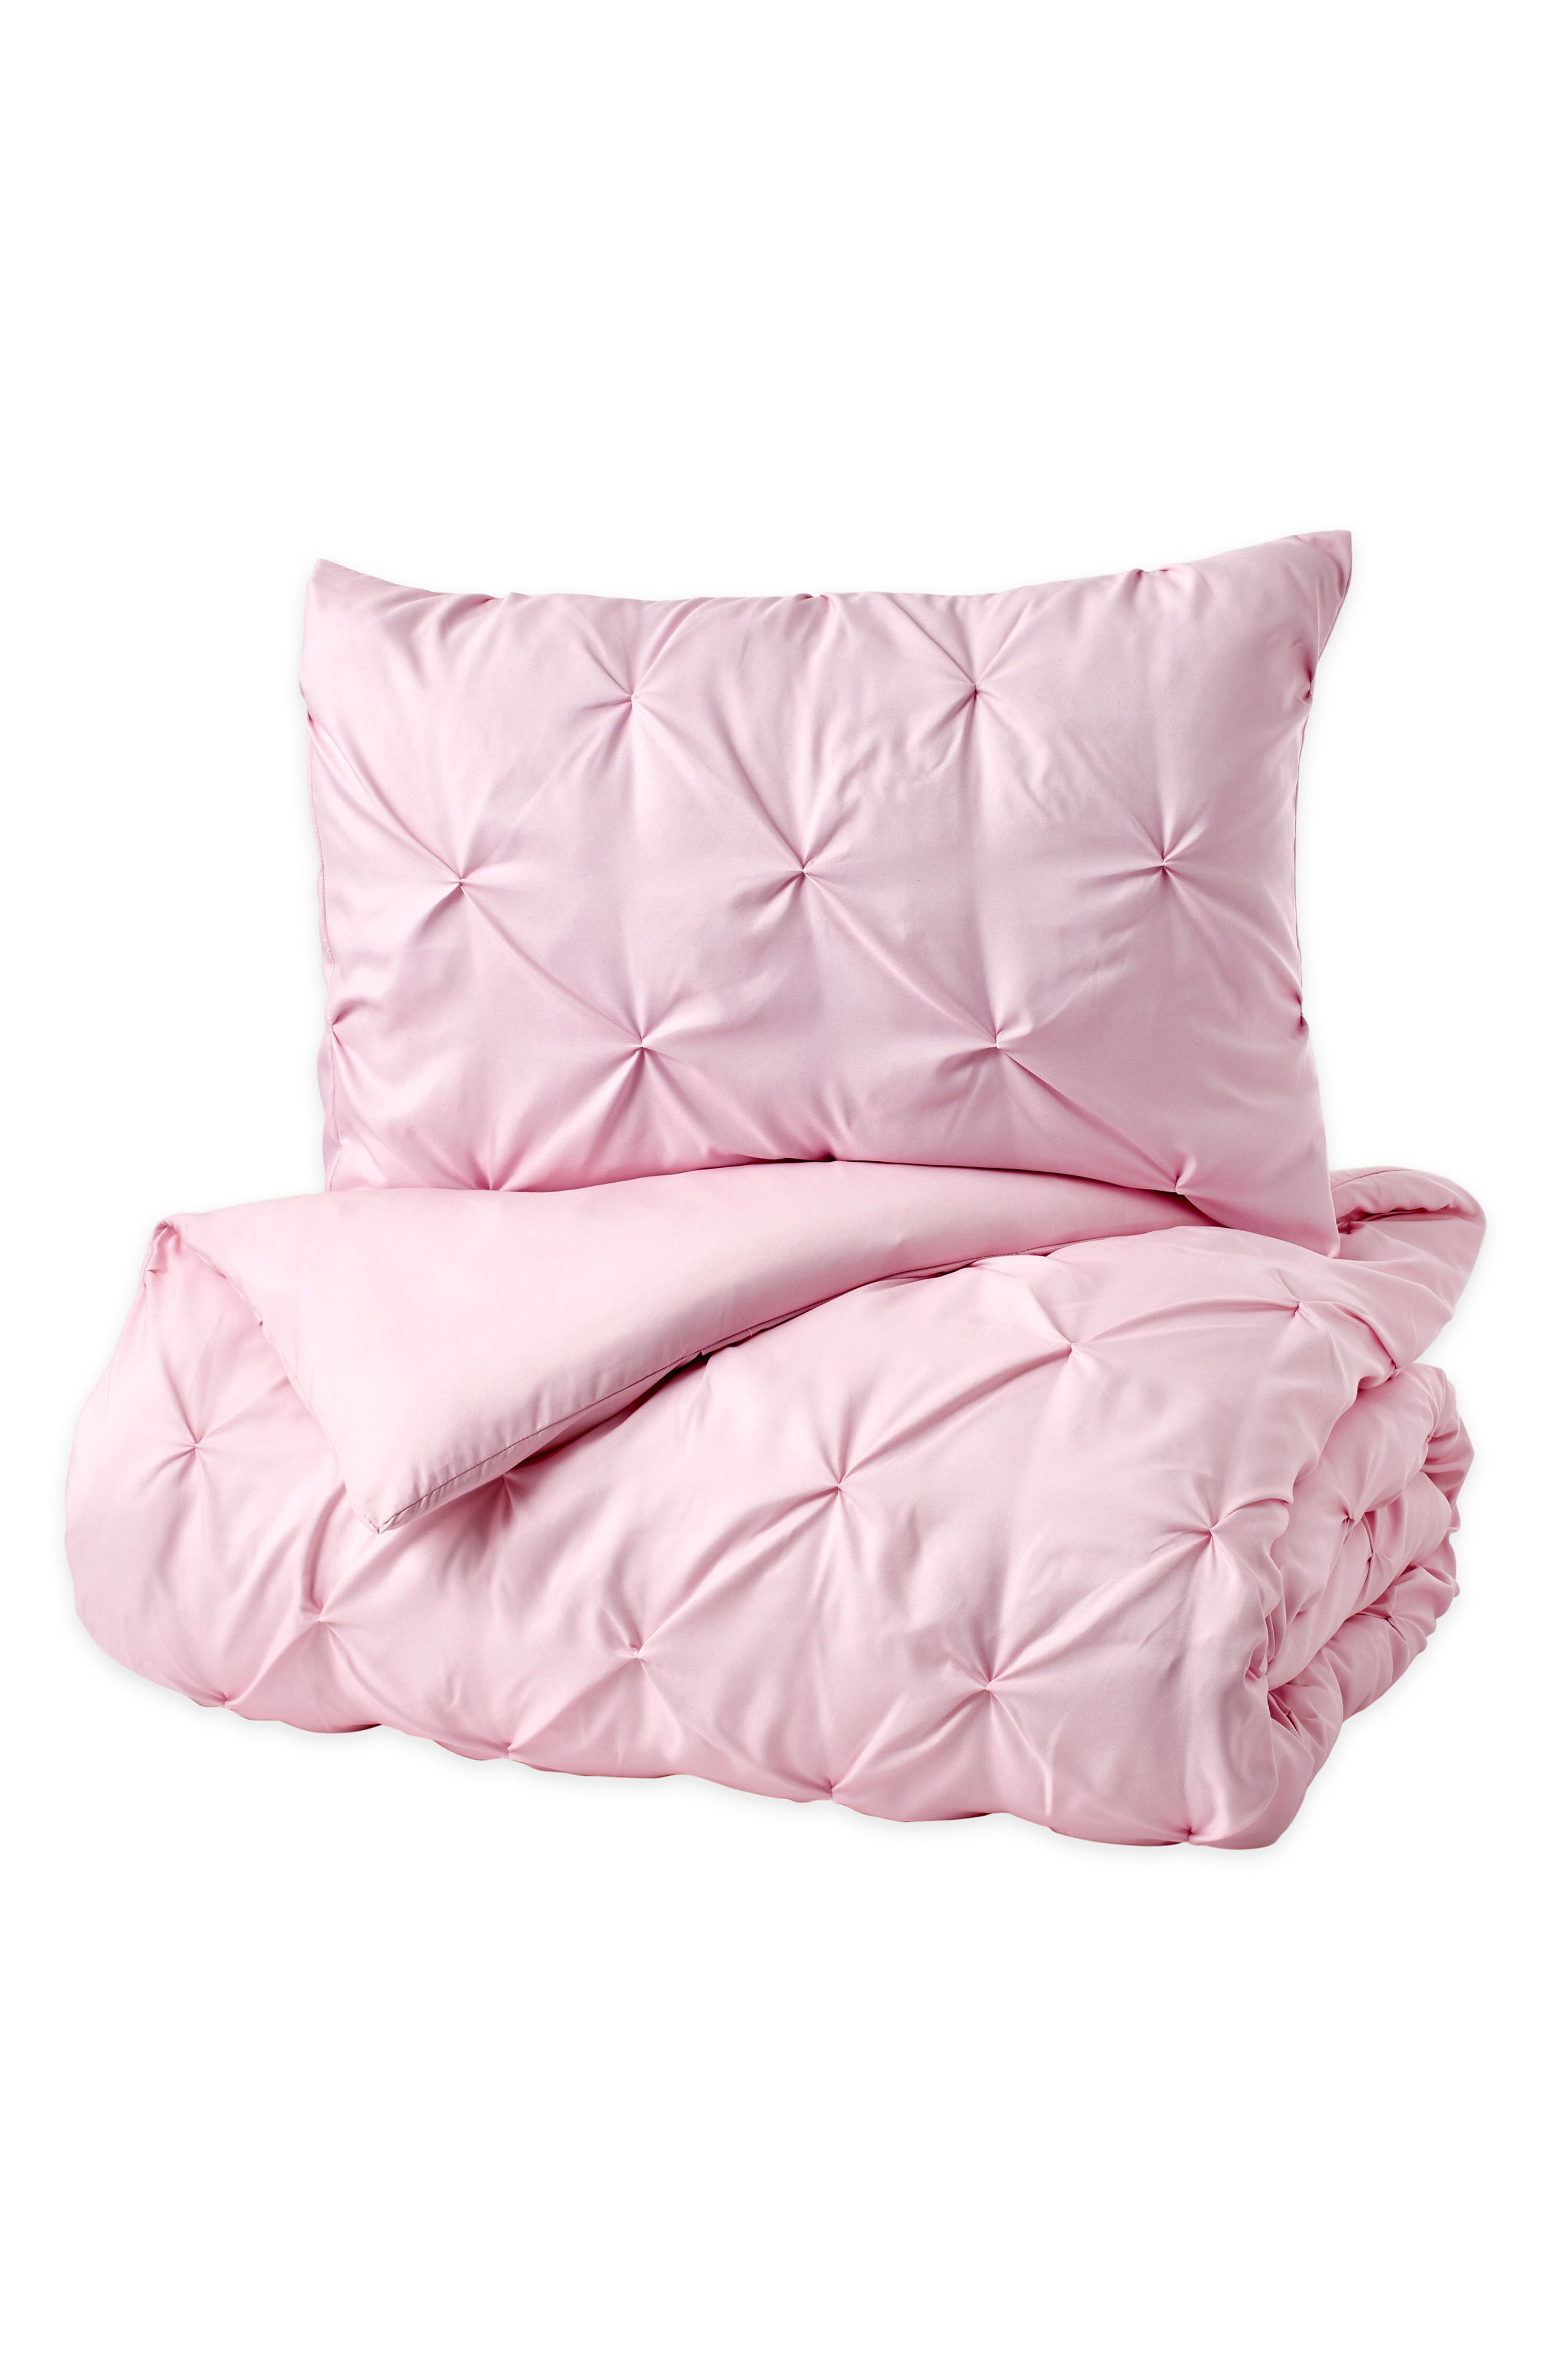 Duvet & Sham Set,                             Alternate thumbnail 5, color,                             Pink